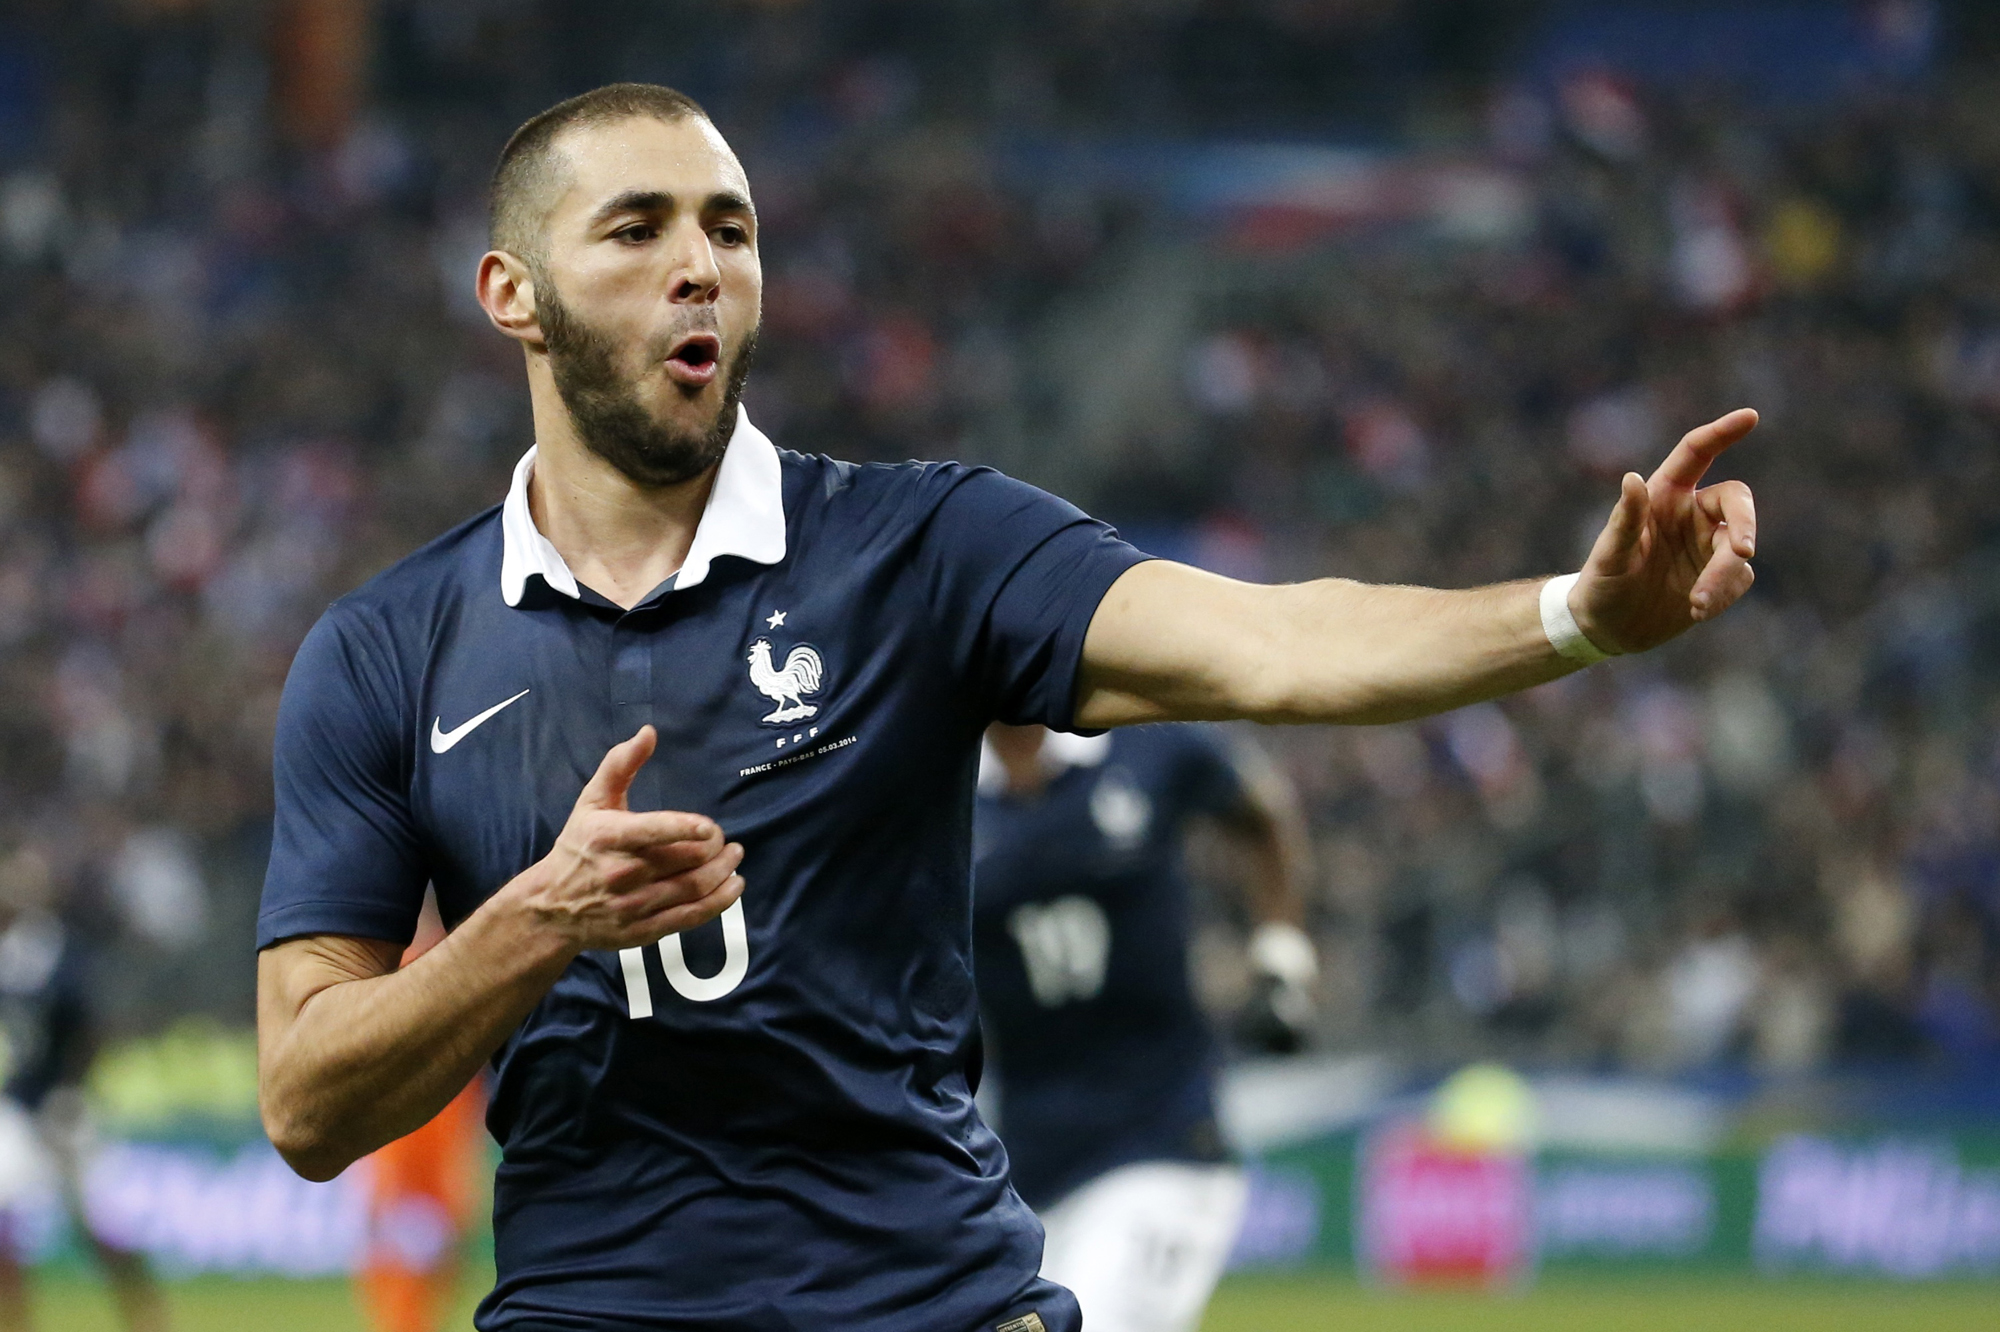 France's Karim Benzema celebrates after scoring againts the Netherlands during their international friendly soccer match at the Stade de France in Saint-Denis near Paris, March 5, 2014. REUTERS/Benoit Tessier (FRANCE - Tags: SPORT SOCCER) - RTR3G379